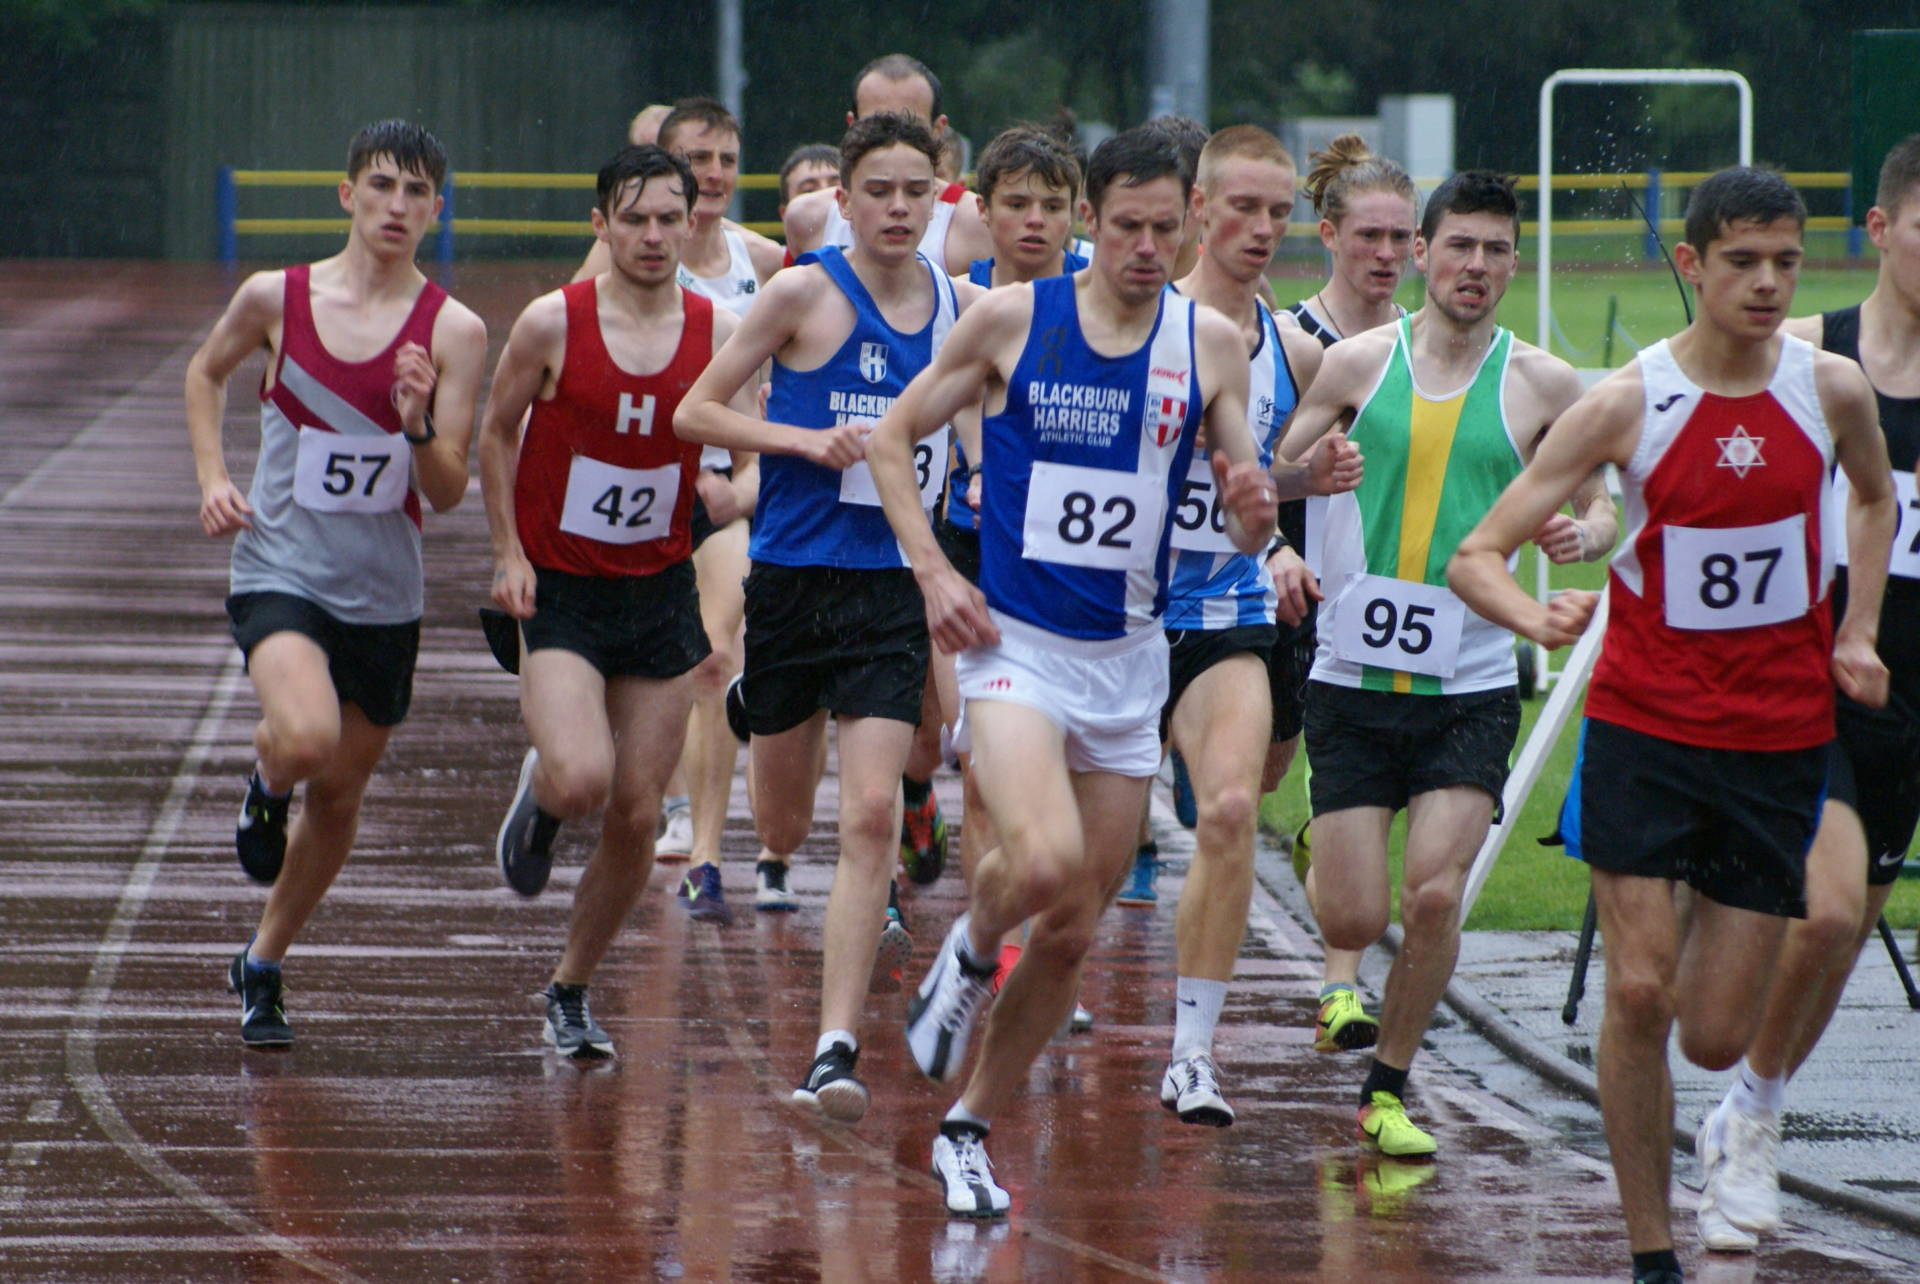 PB's for Harriers at Trafford – Tom in Mountain Running Trials – Chris and Paul in top 5 at Astley Park & Annabel 1st Woman – Matt & John tackle Pen-y-Ghent Race